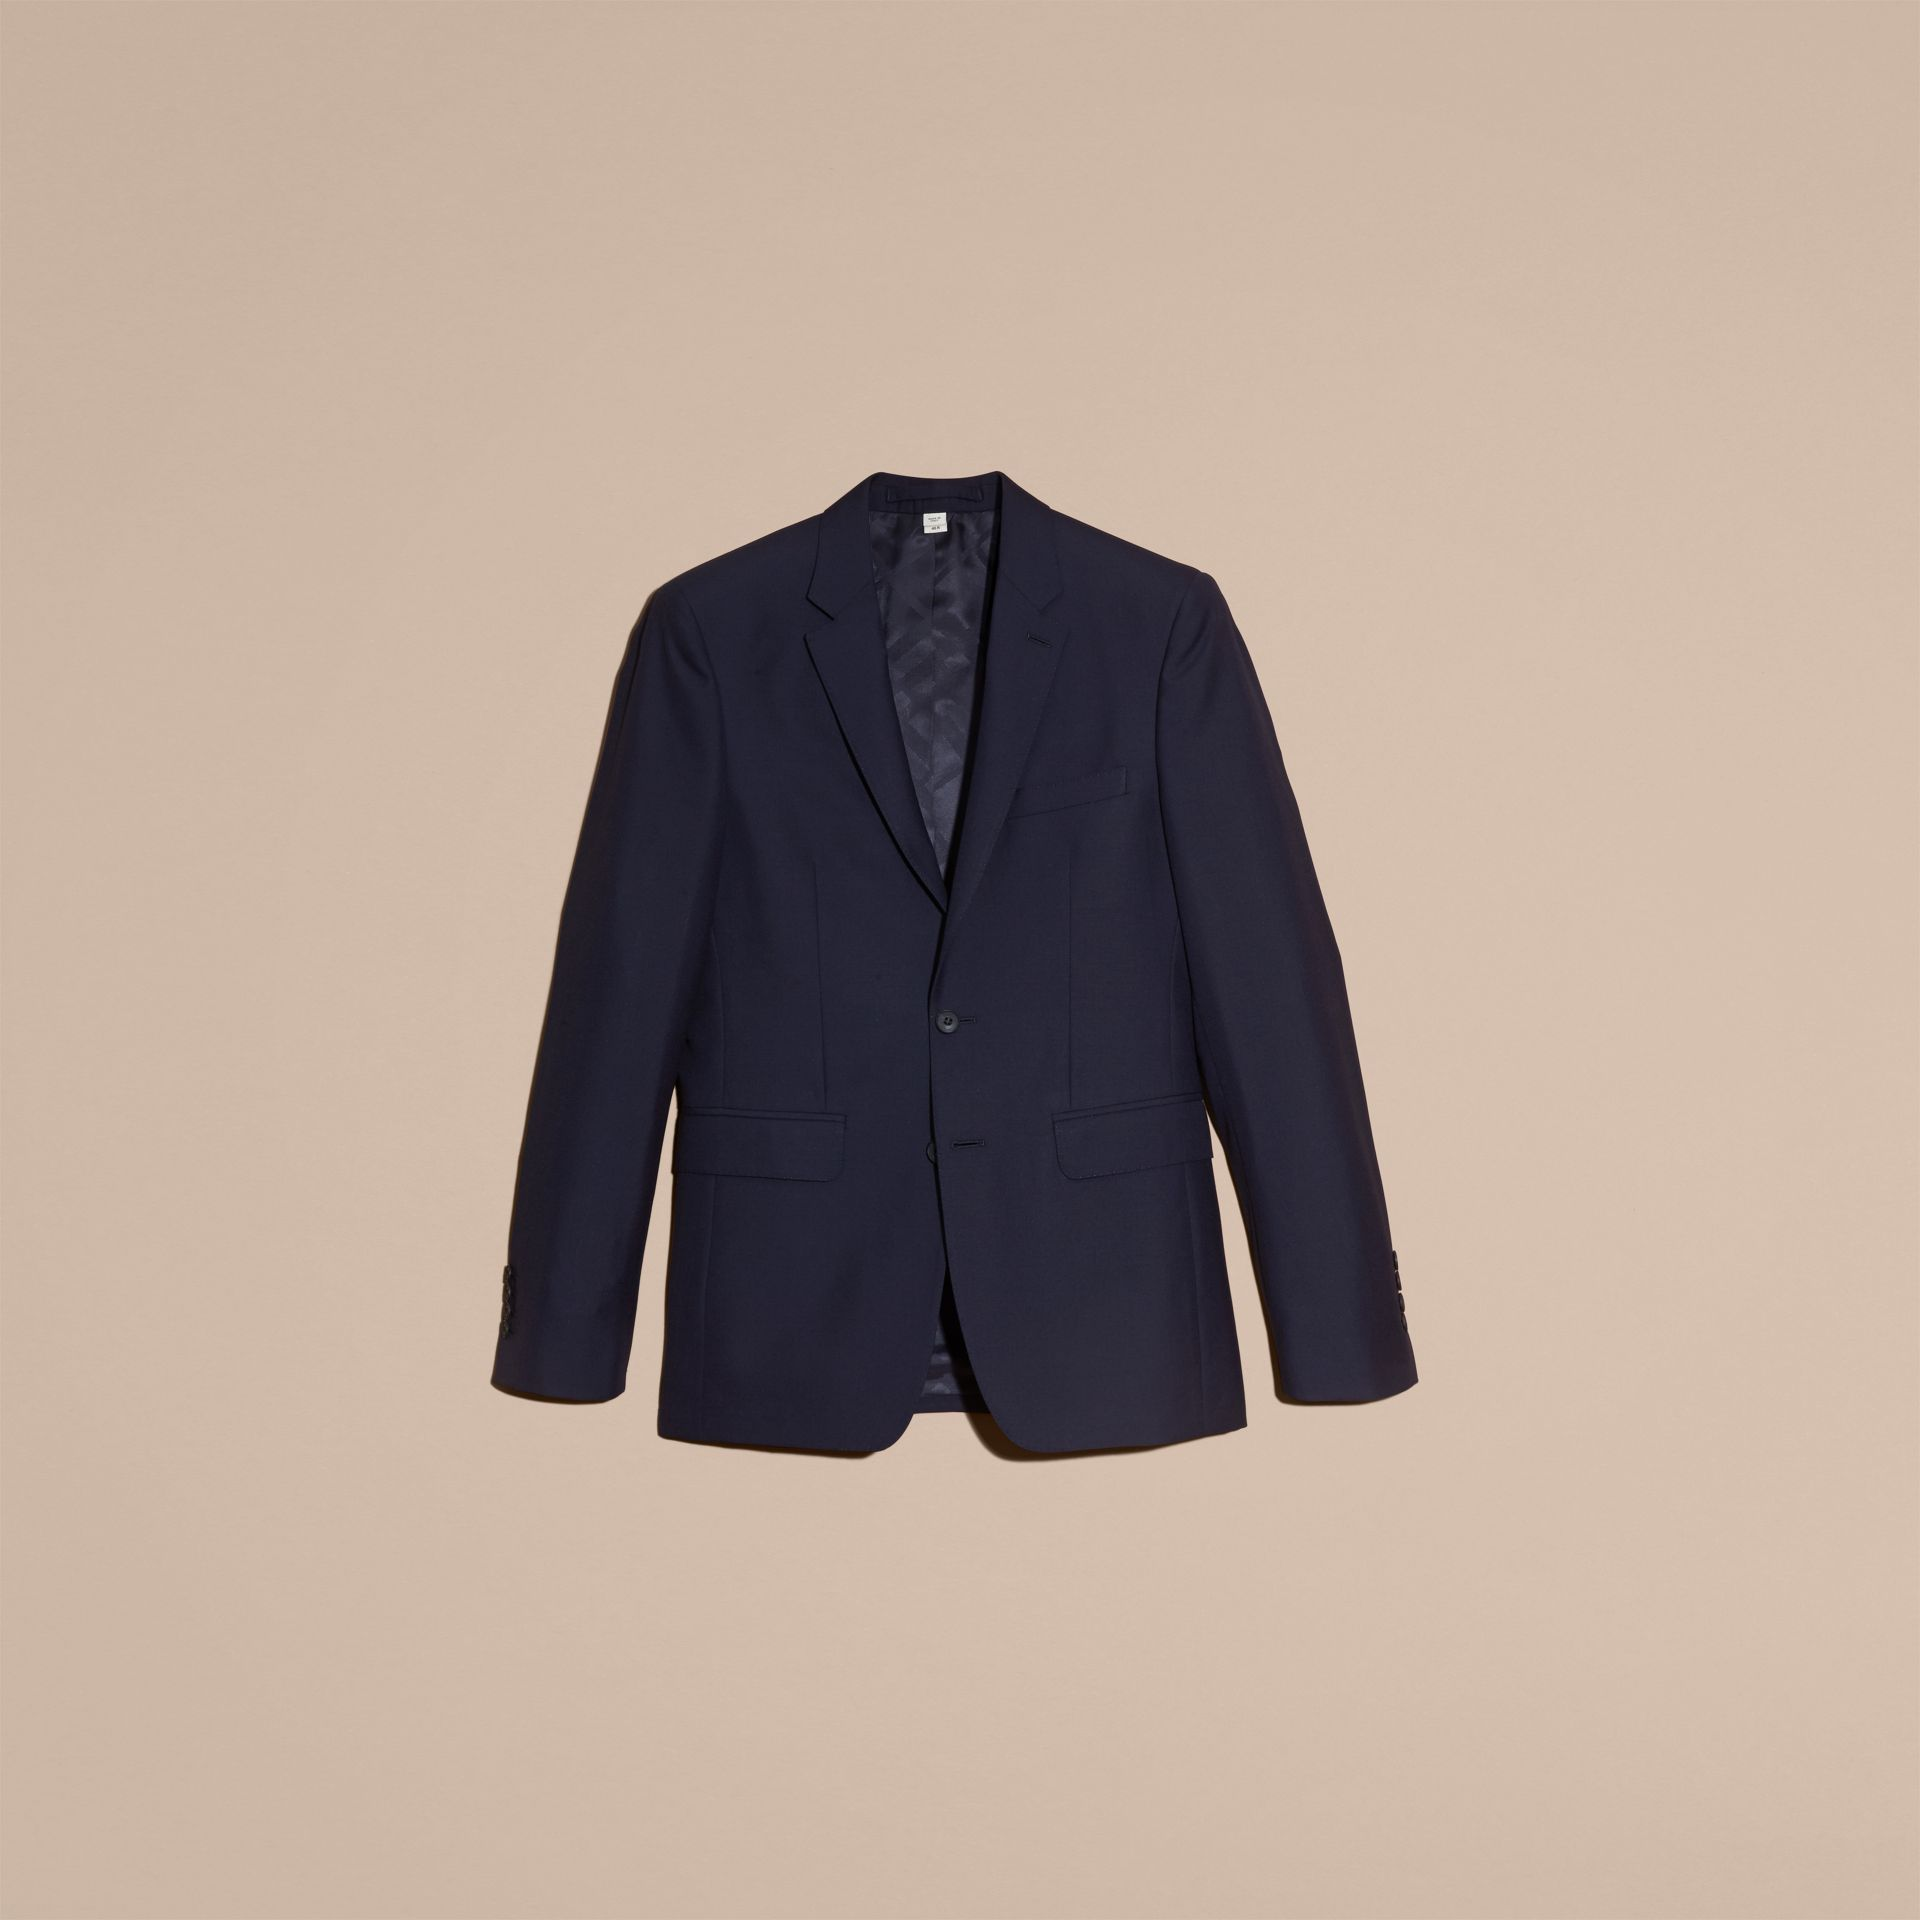 Navy Slim Fit Wool Part-canvas Suit Navy - gallery image 4